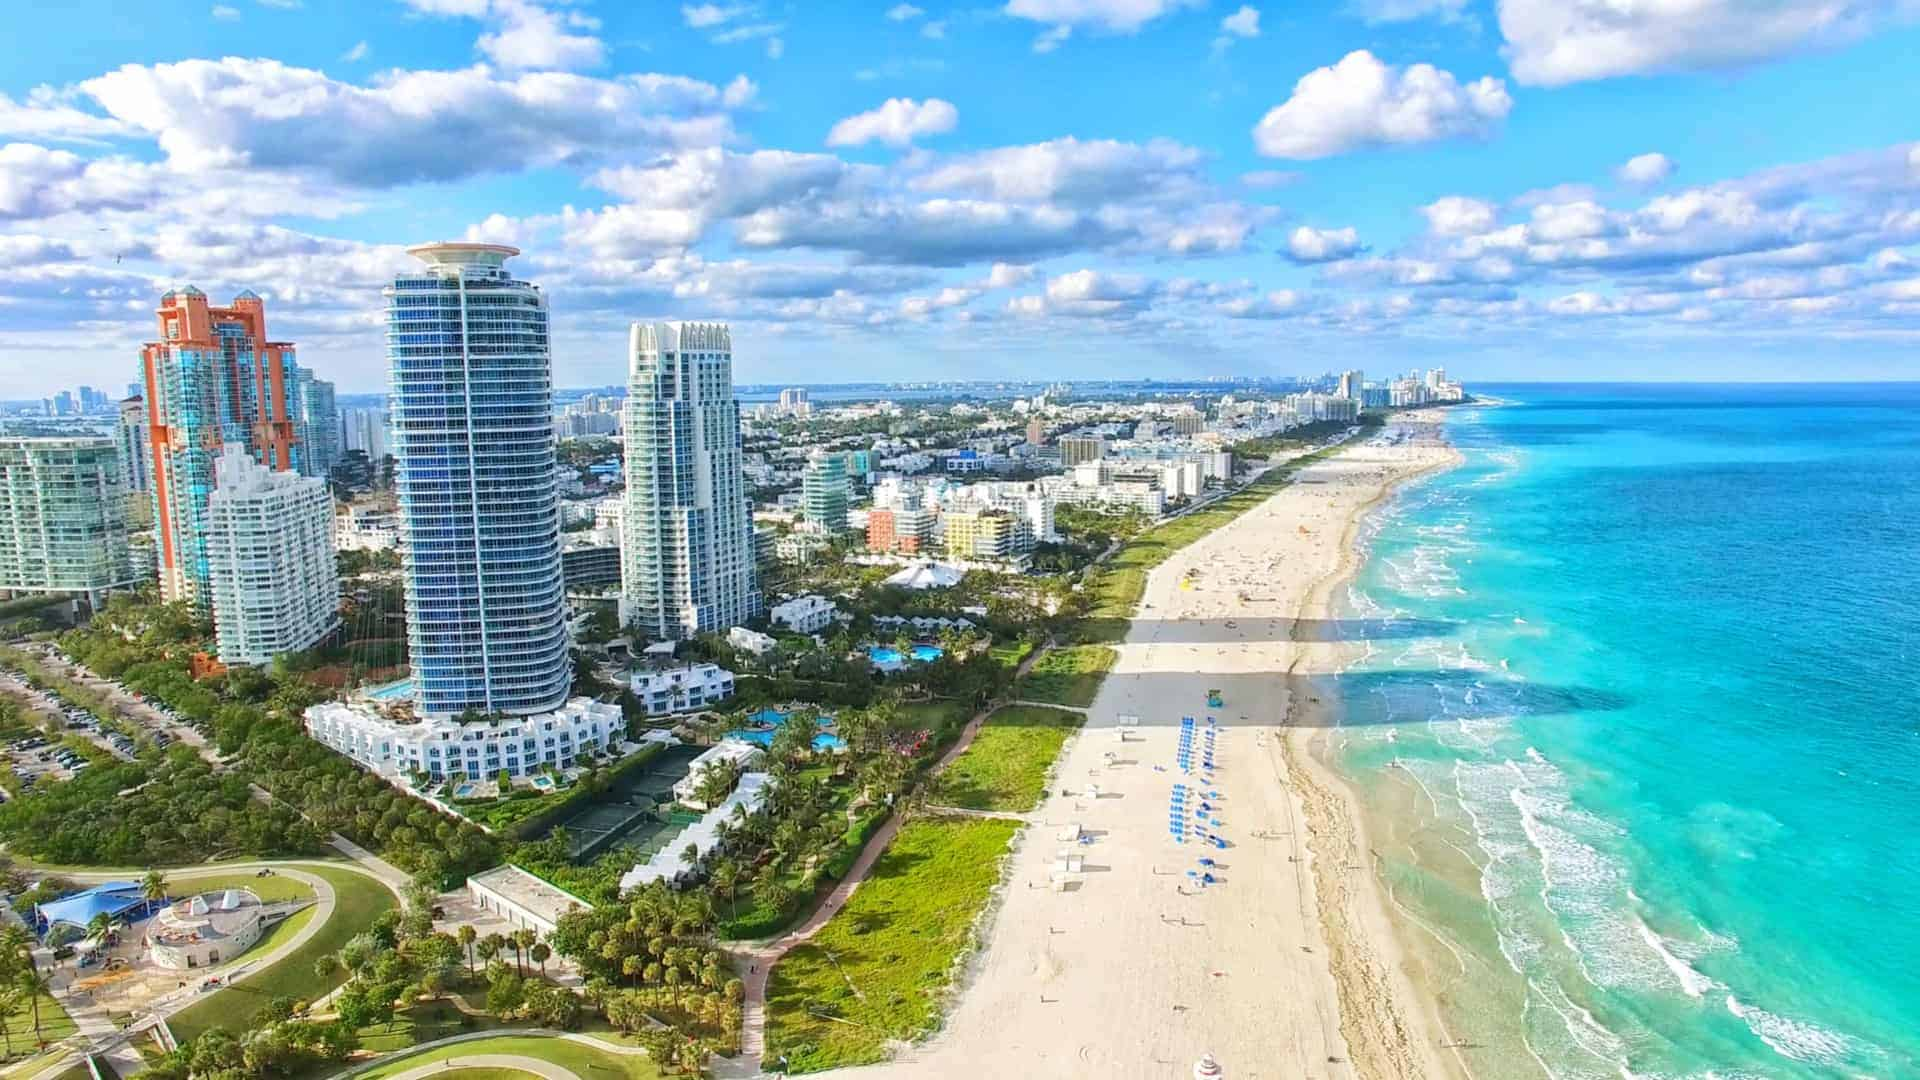 7 Best Beach Towns in Florida for Families